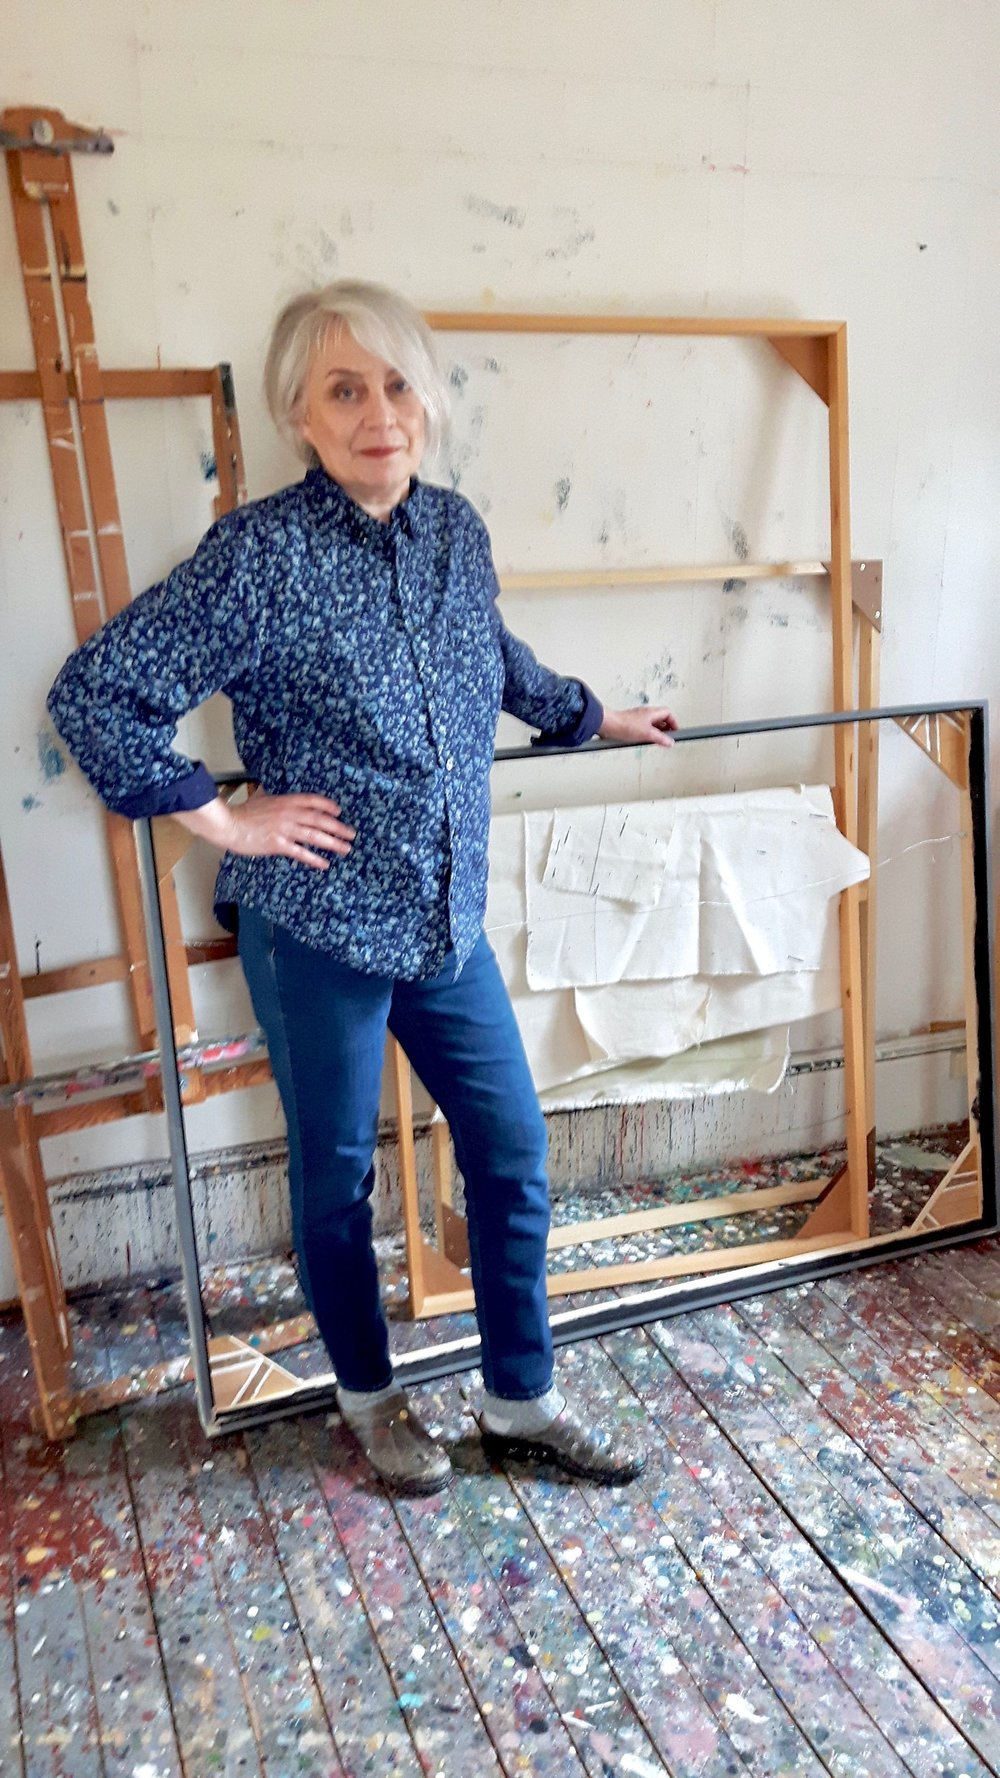 Artist in her studio, April 2017